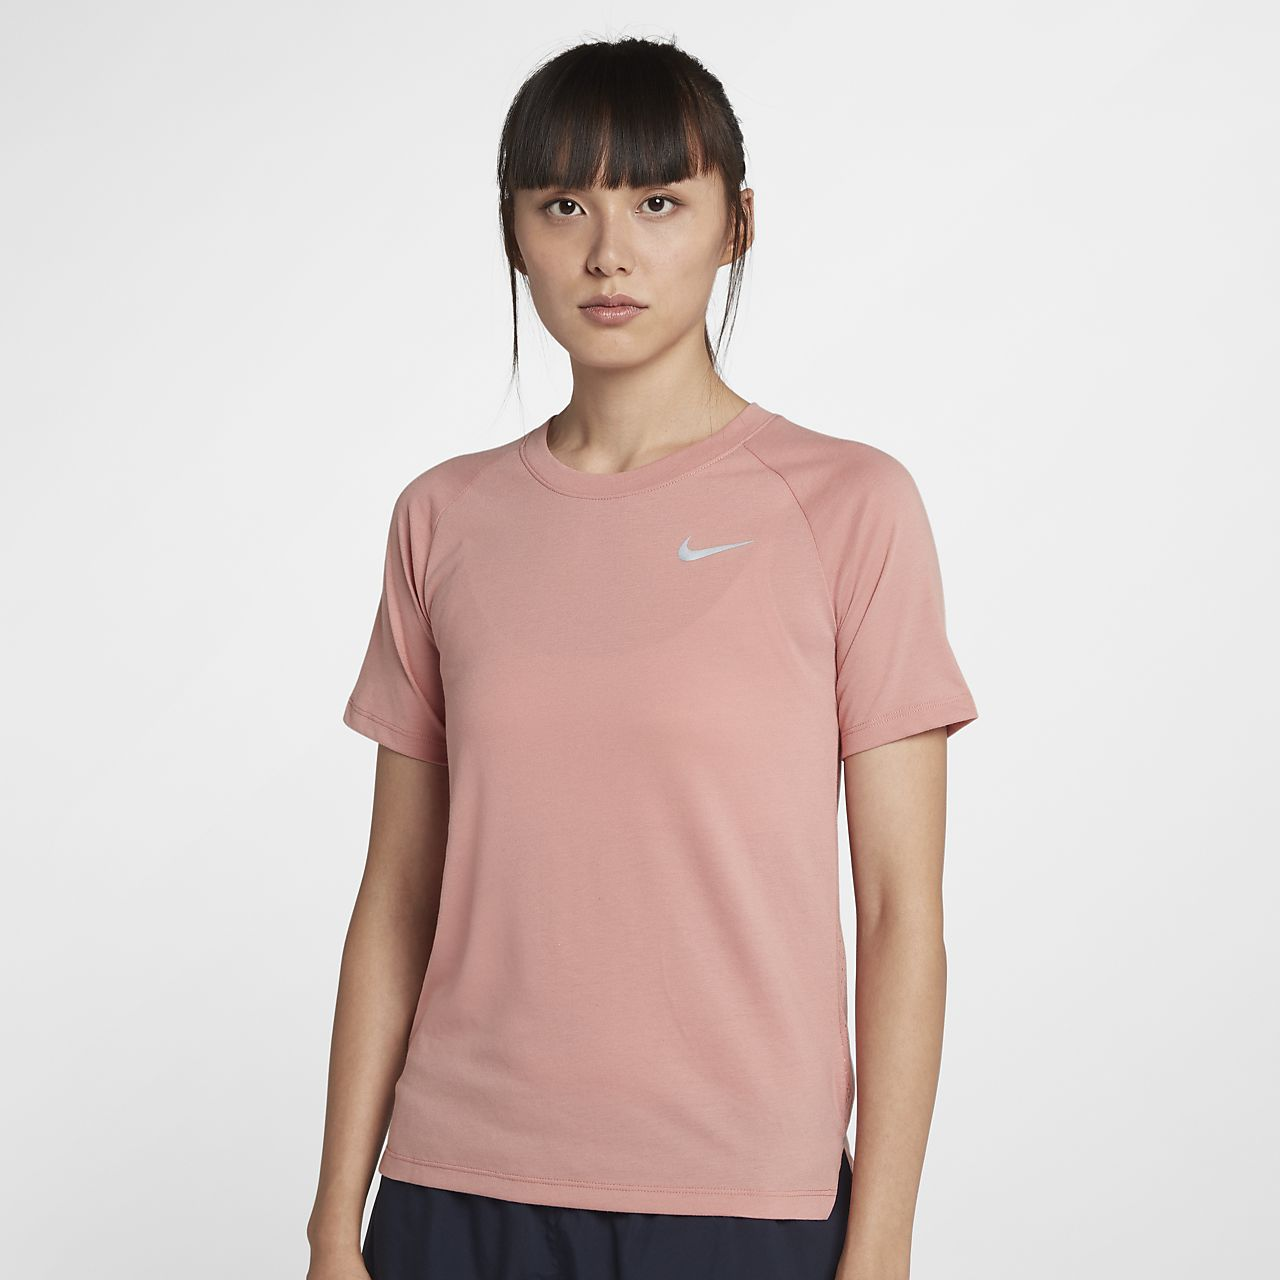 Nike Dri-FIT Tailwind Women's Short-Sleeve Running Top